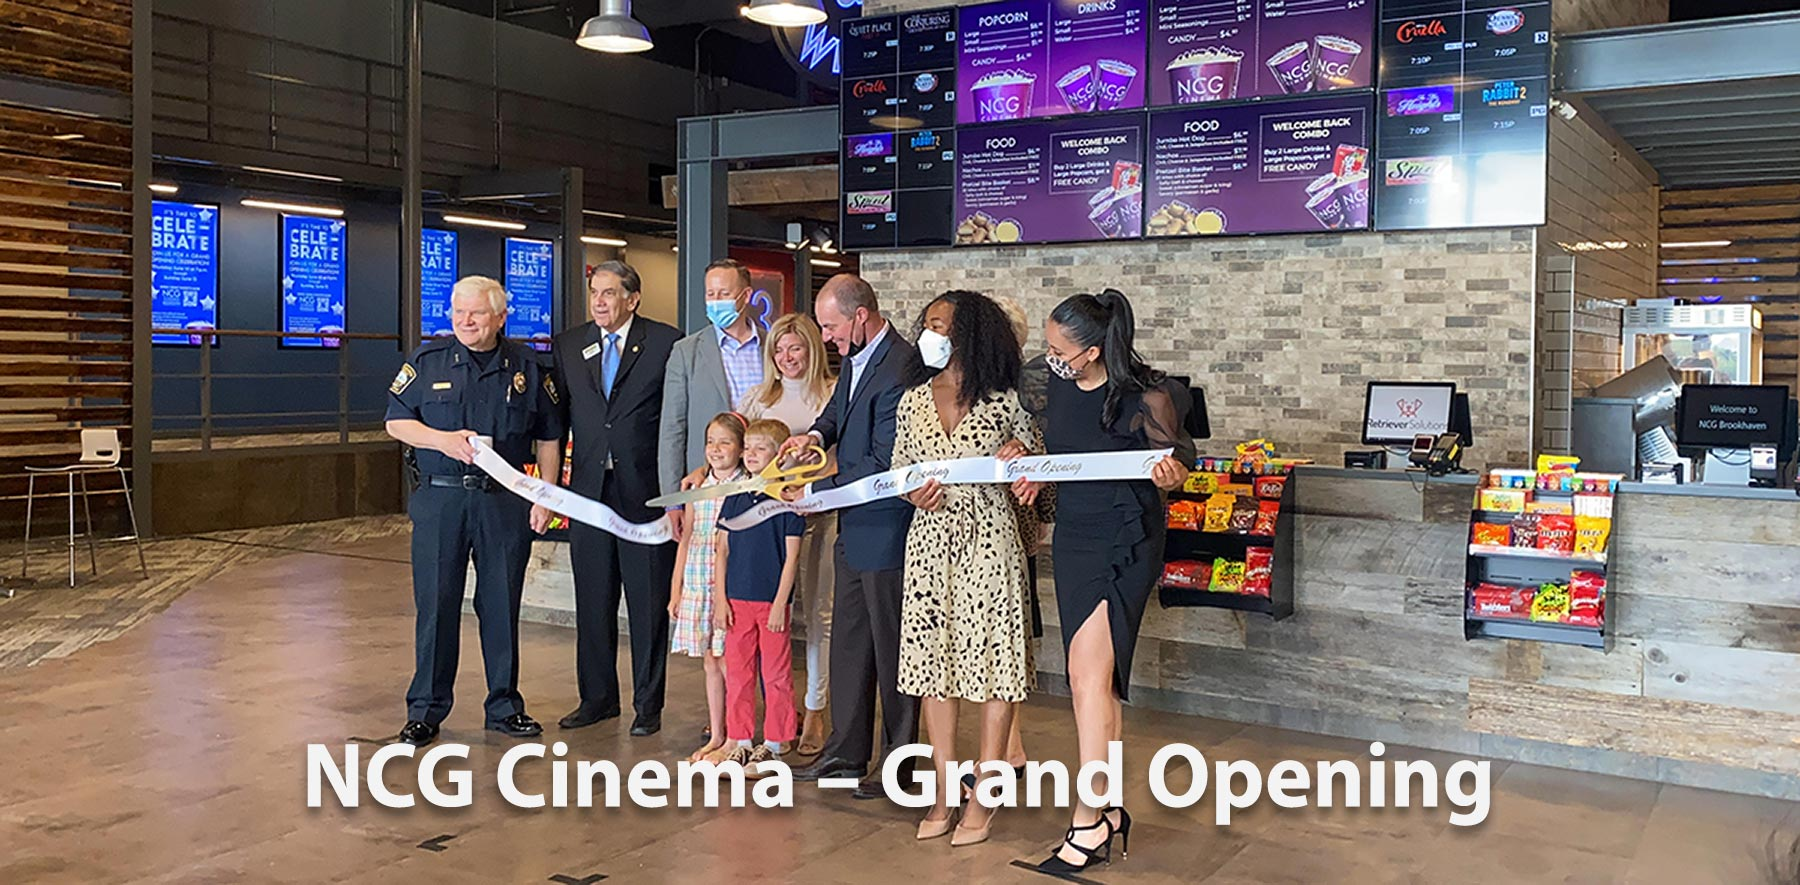 Grand Opening Weekend: Location: 3365 Buford Highway #920, Brookhaven, GA 30329 Date/time: June 10 – 13, Thursday 7:00 P.M. – All Week End